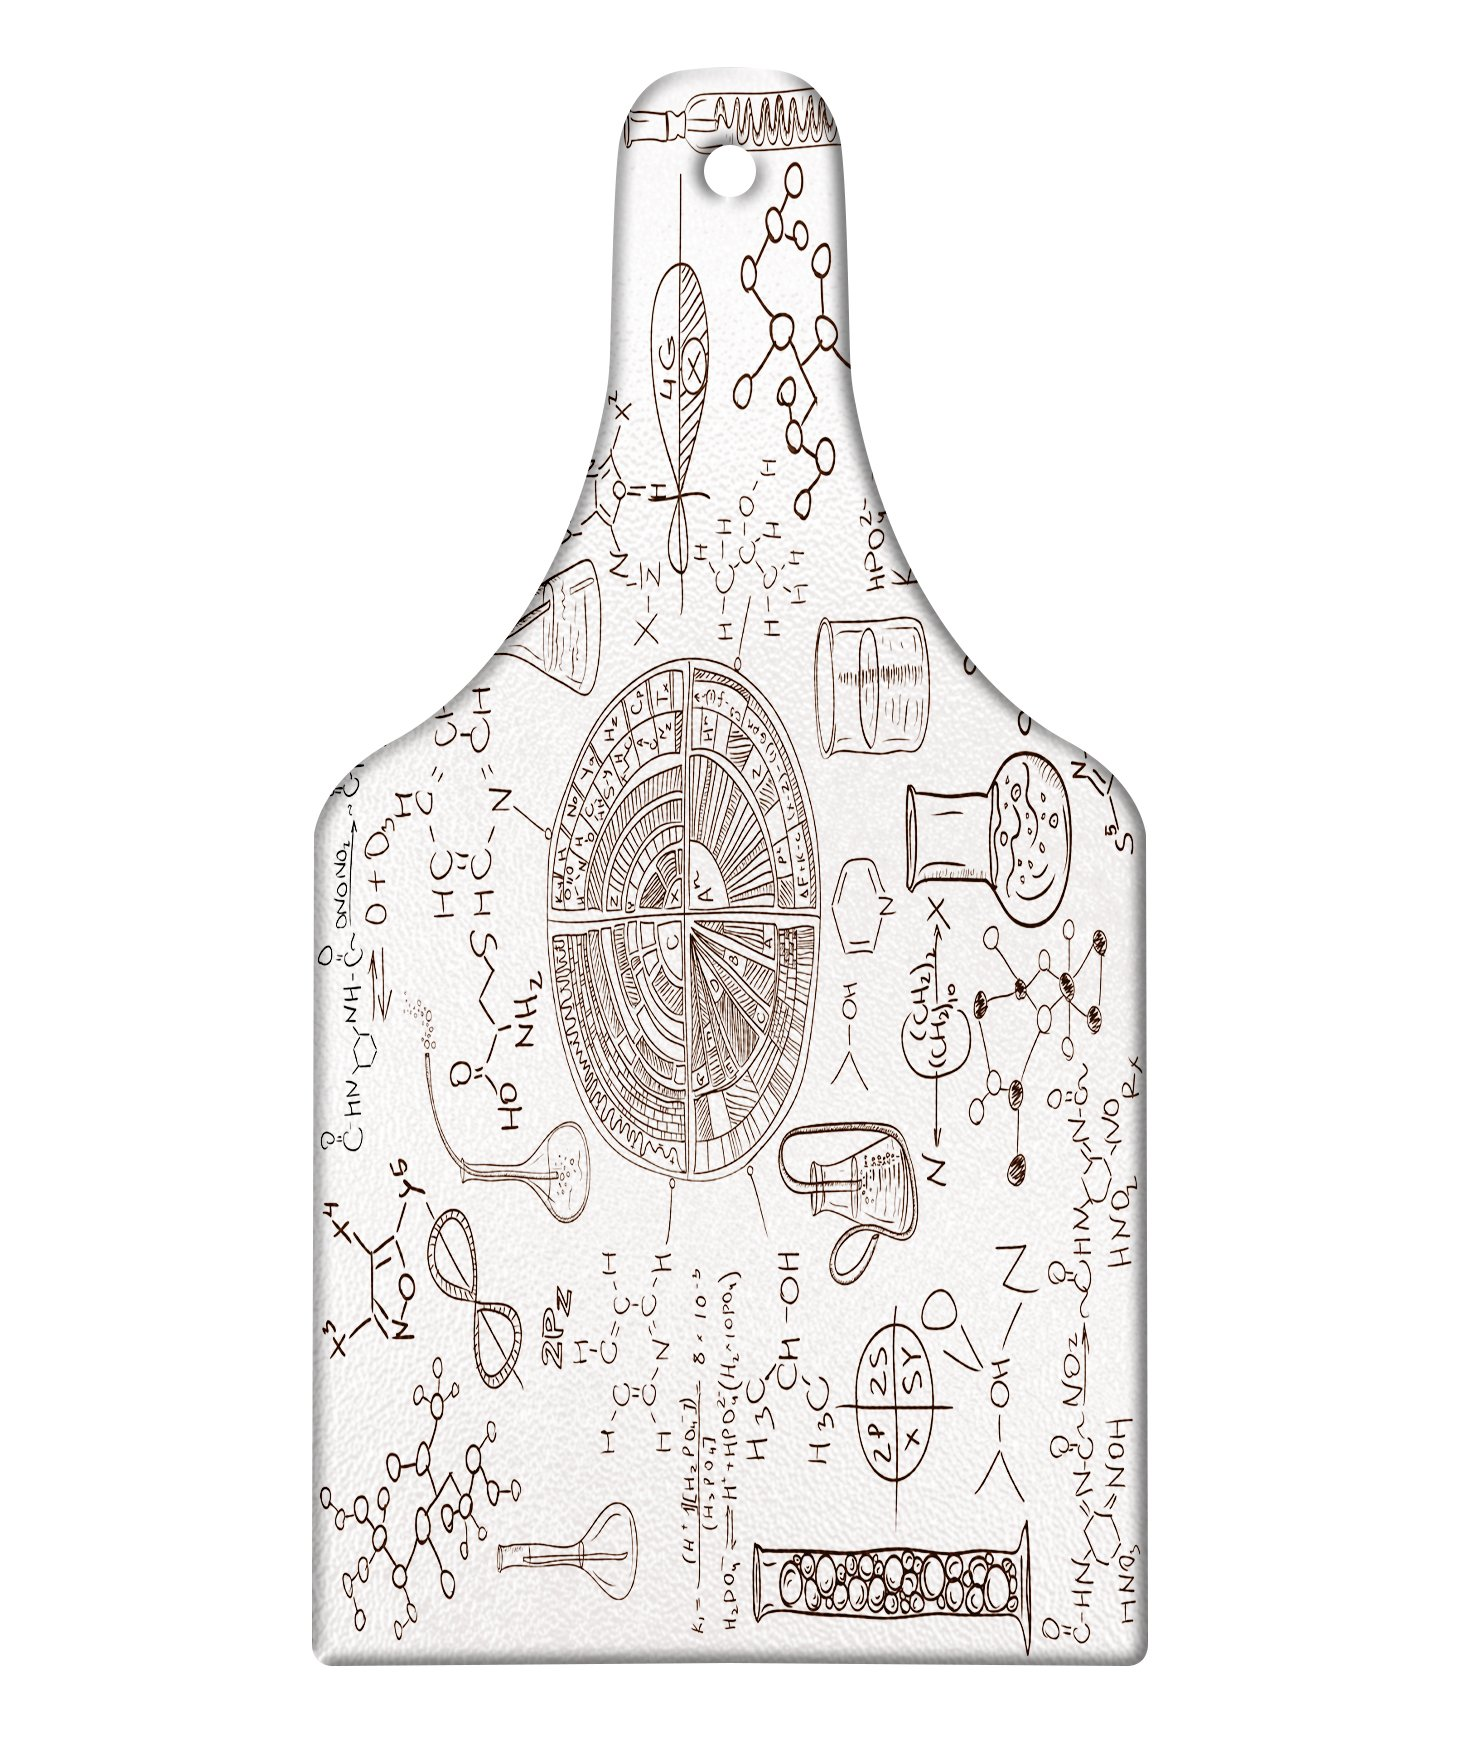 Lunarable Science Cutting Board, Science Theme Hand Drawn Style Chemistry Laboratory School Classroom Illustration, Decorative Tempered Glass Cutting and Serving Board, Wine Bottle Shape, Umber White